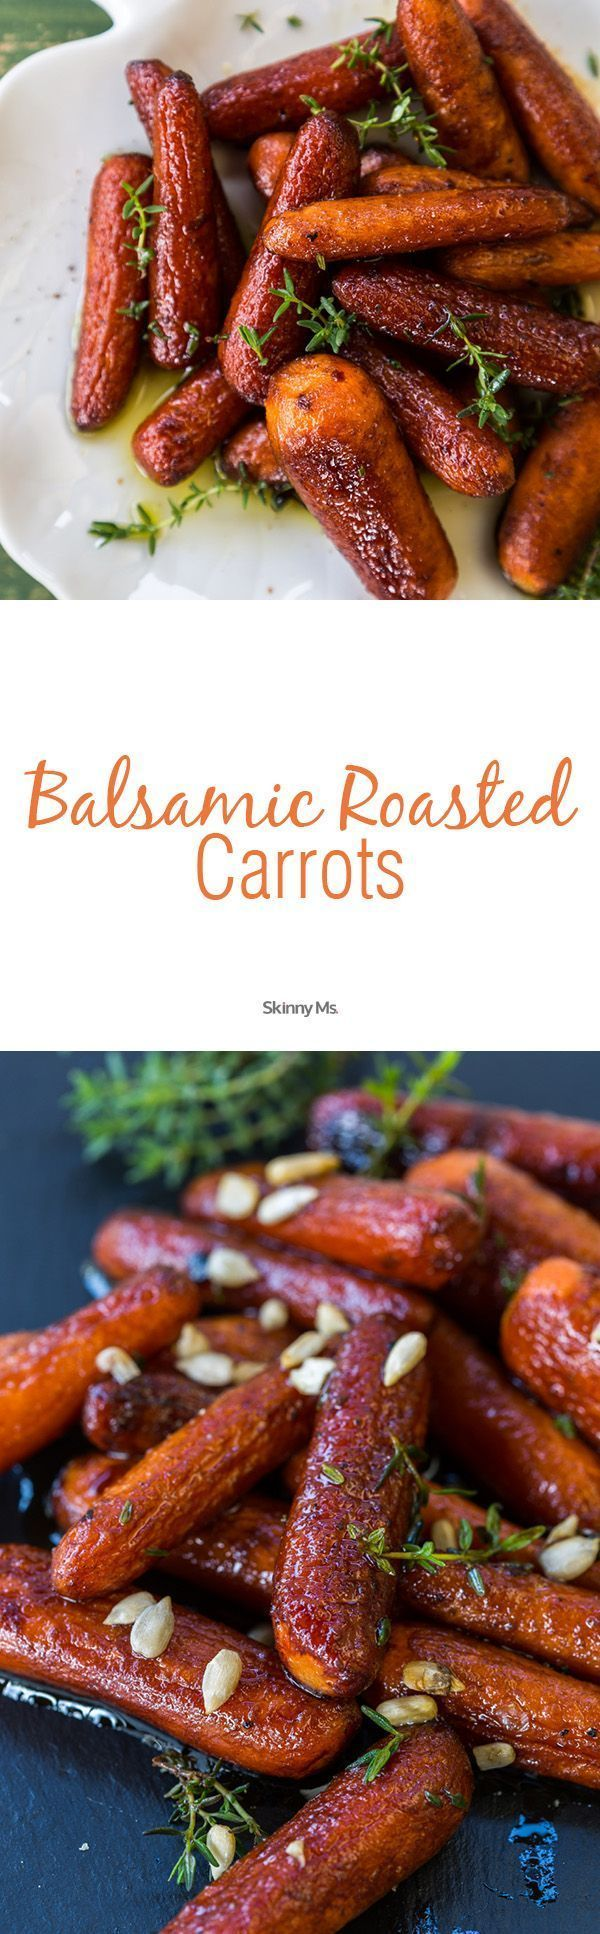 Roasting veggies is definitely the way to go in order to bring out the flavor, not to mention it's totally easy! These carrots go great as a side with almost any dinner. #recipes